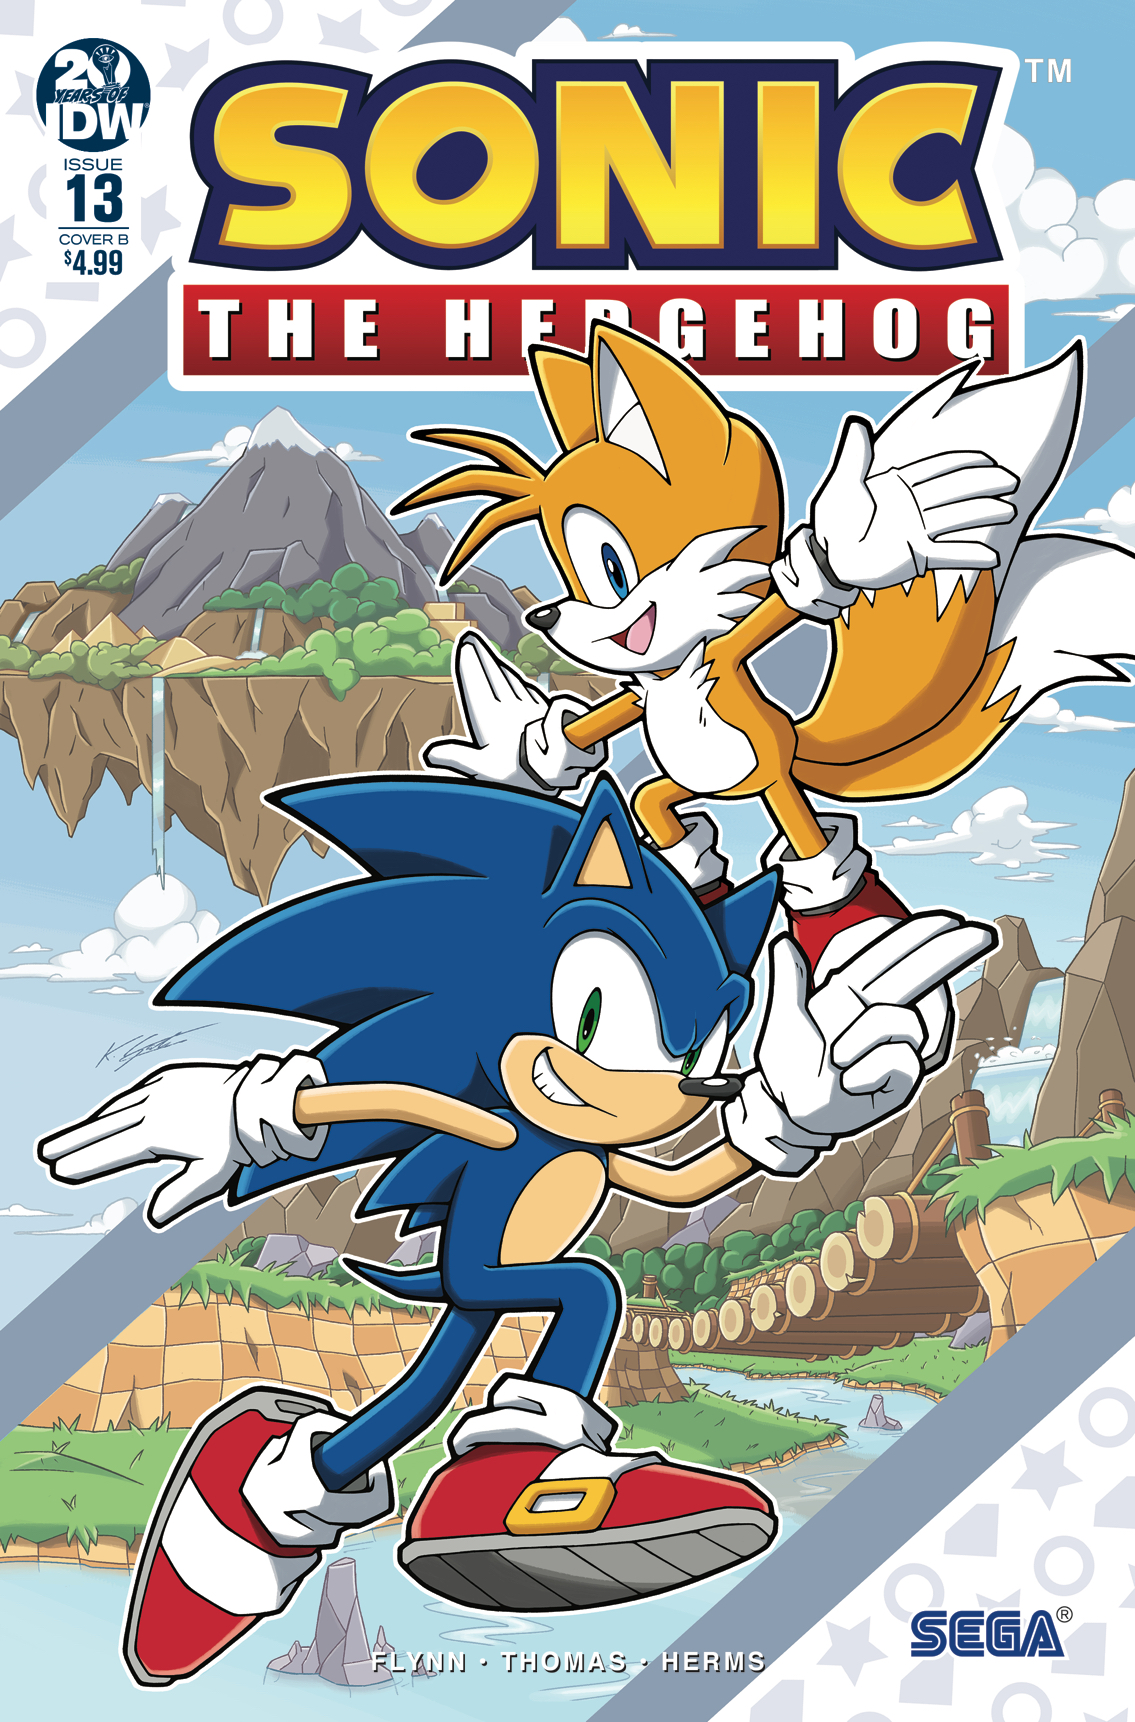 IDW Sonic the Hedgehog Issue 13